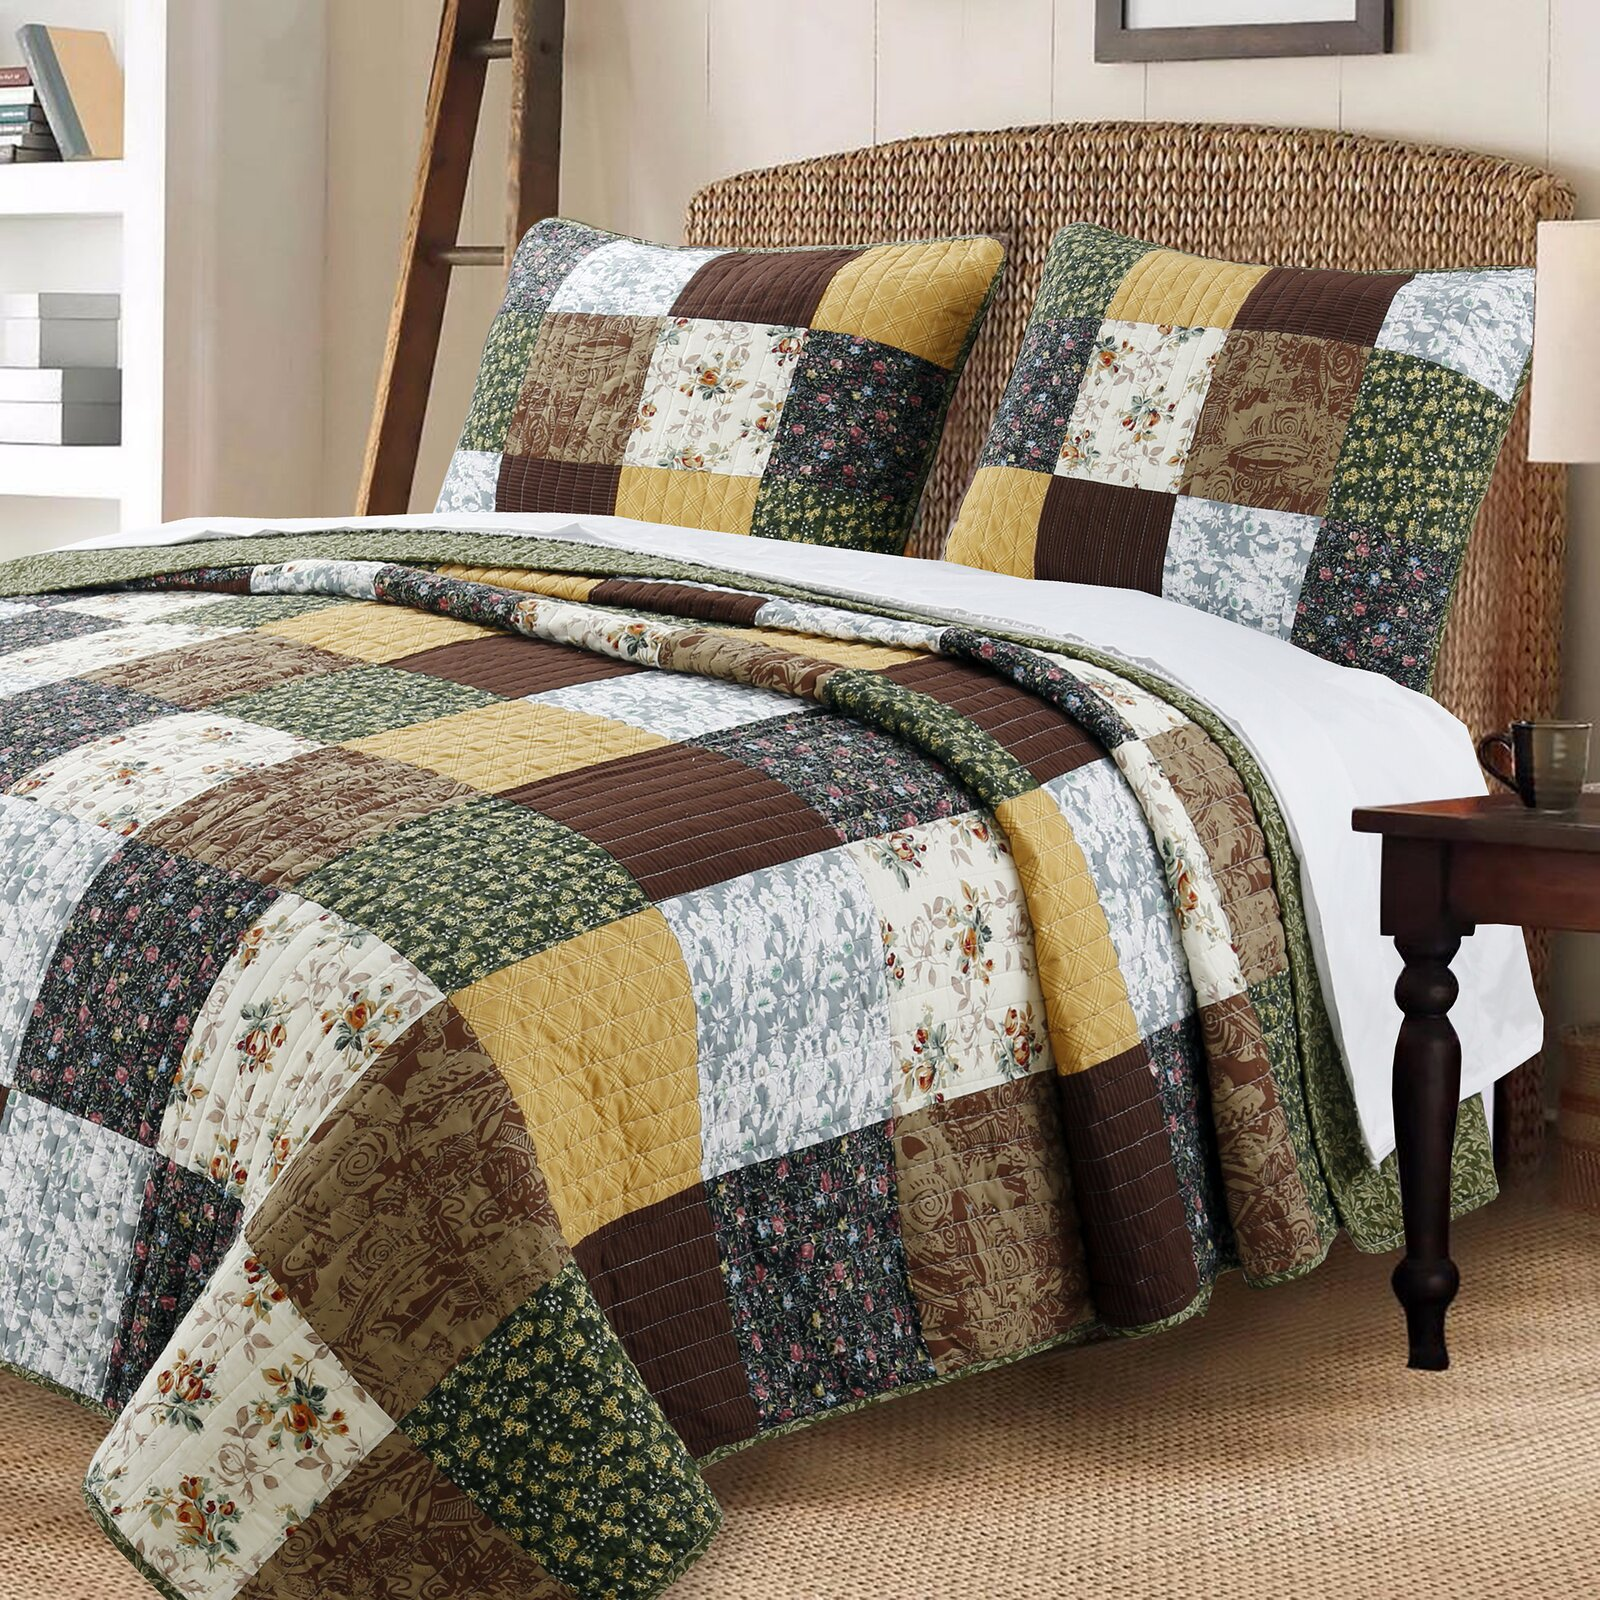 Or Change Up the Bedroom with a Quilt Set